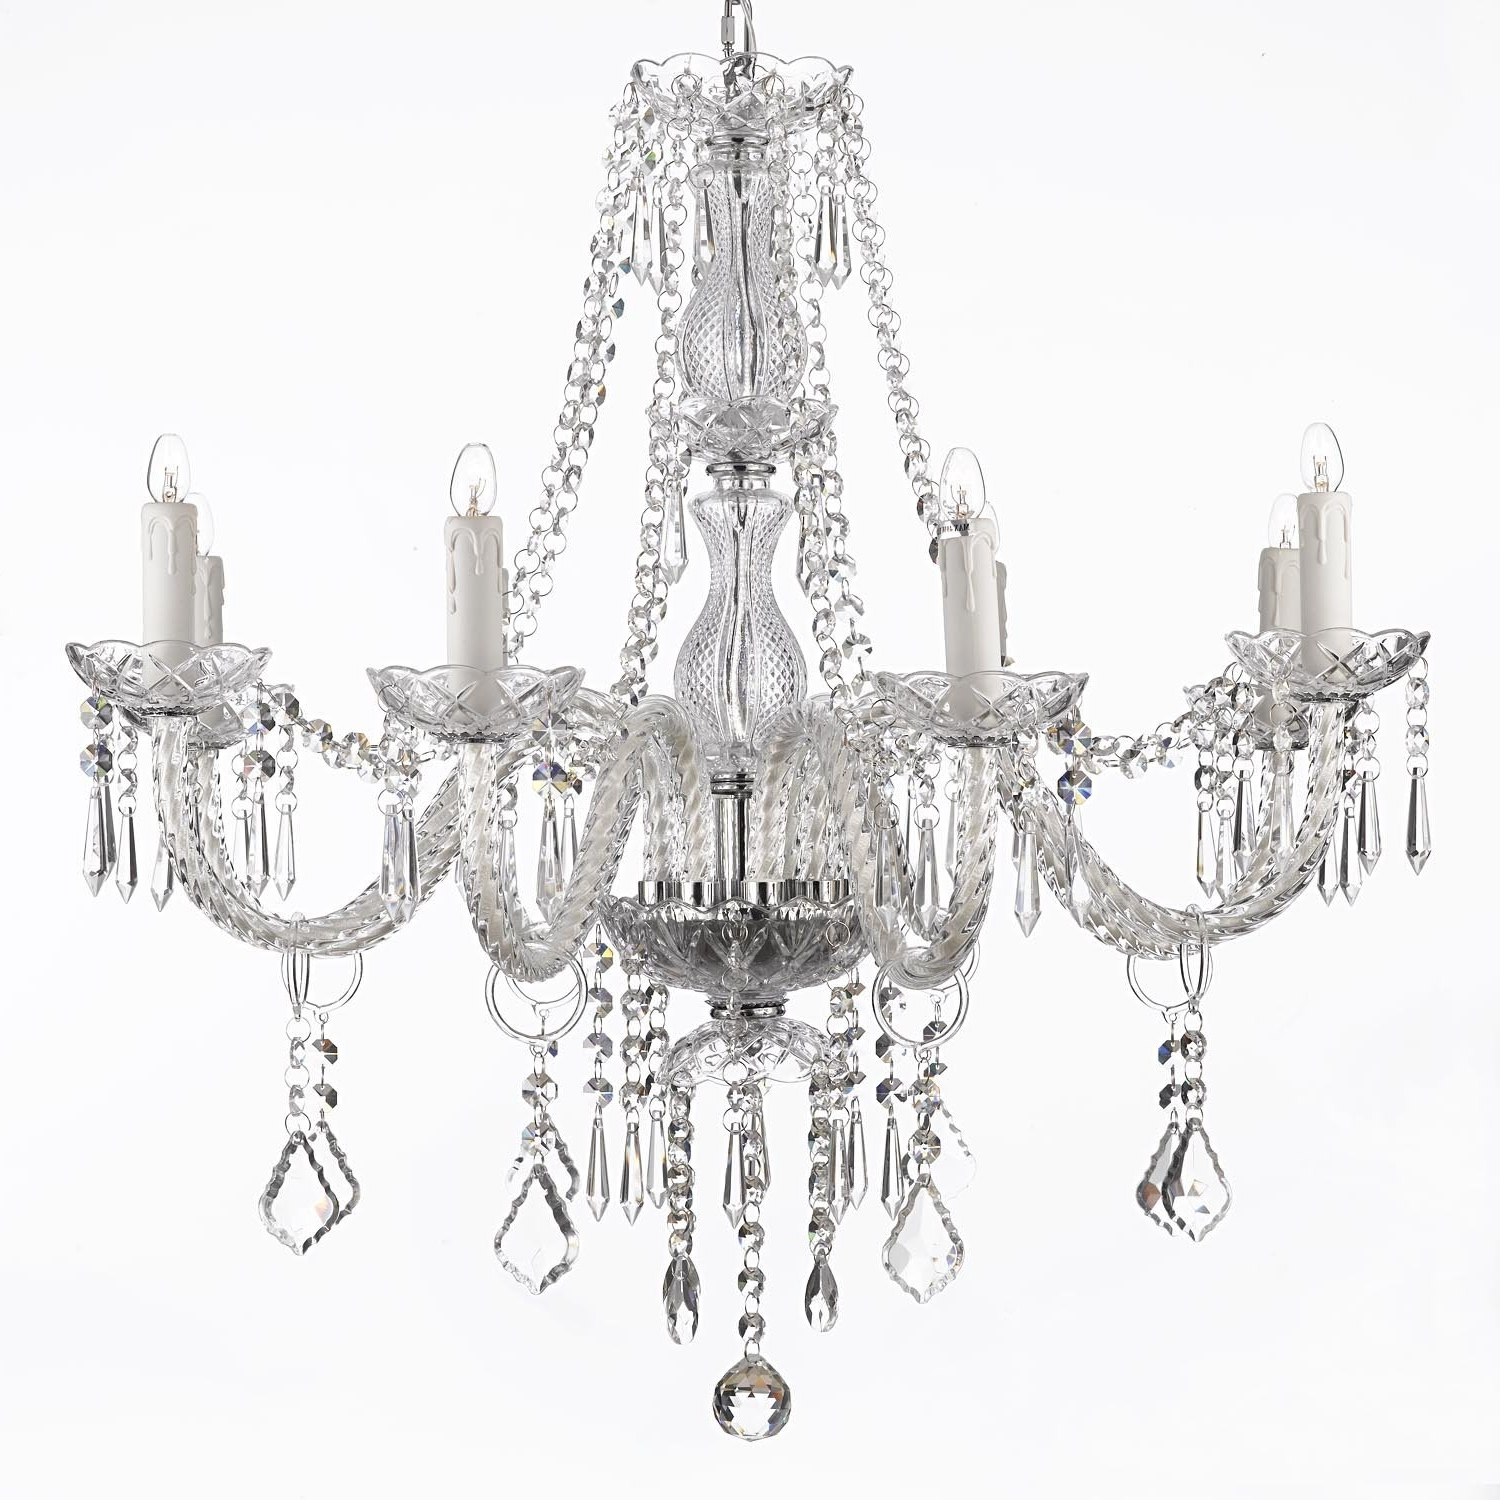 [%How To Choose The Best Chandelier [Buyer's Guide] Inside Fashionable Hanging Candelabra Chandeliers|Hanging Candelabra Chandeliers Regarding Well Known How To Choose The Best Chandelier [Buyer's Guide]|Fashionable Hanging Candelabra Chandeliers Pertaining To How To Choose The Best Chandelier [Buyer's Guide]|Recent How To Choose The Best Chandelier [Buyer's Guide] In Hanging Candelabra Chandeliers%] (View 1 of 20)